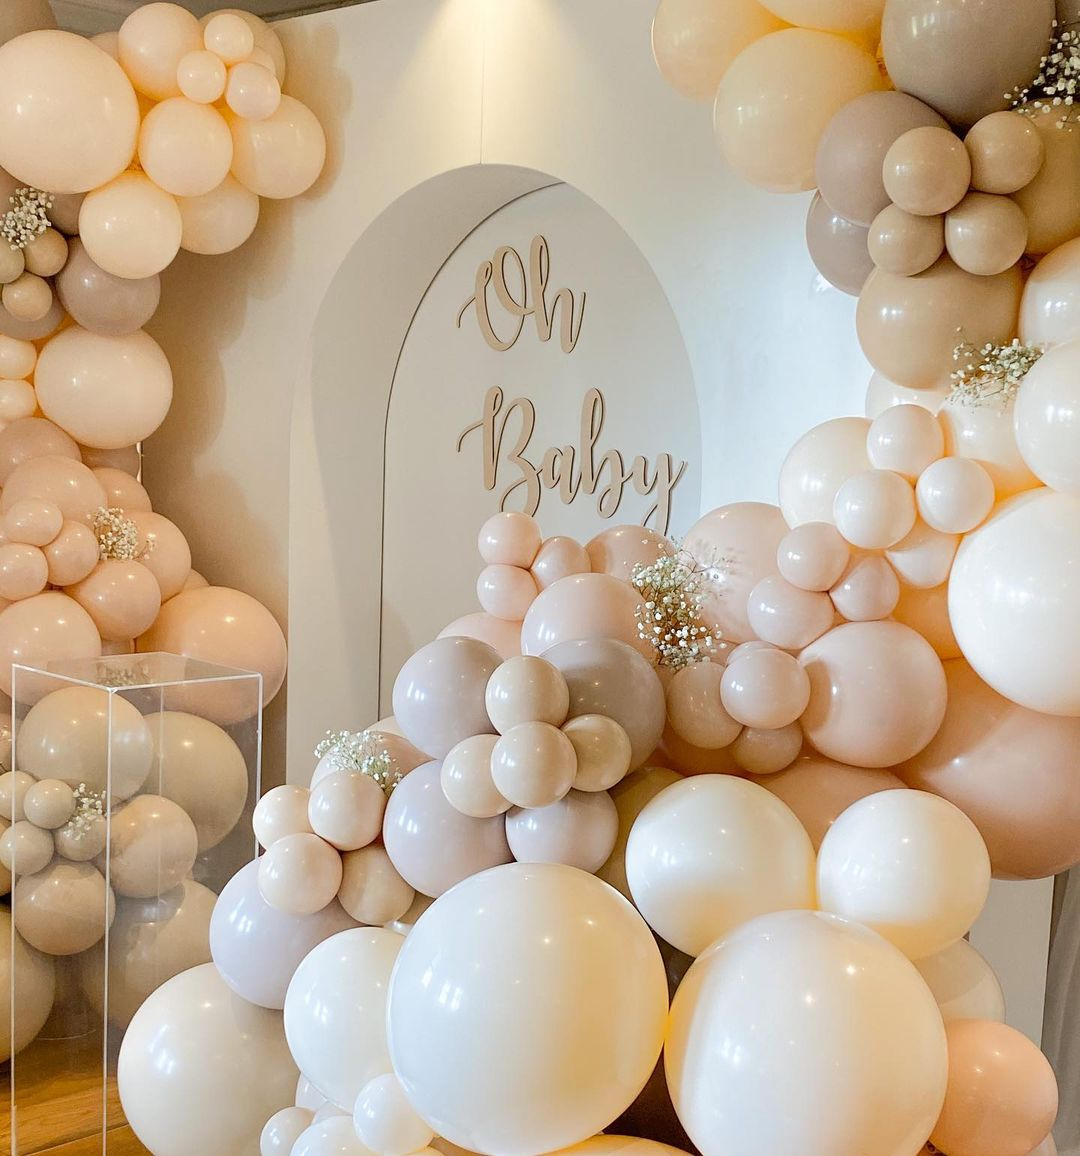 balloons.by .agustina 192064858 203425011619951 3759331308664613879 n